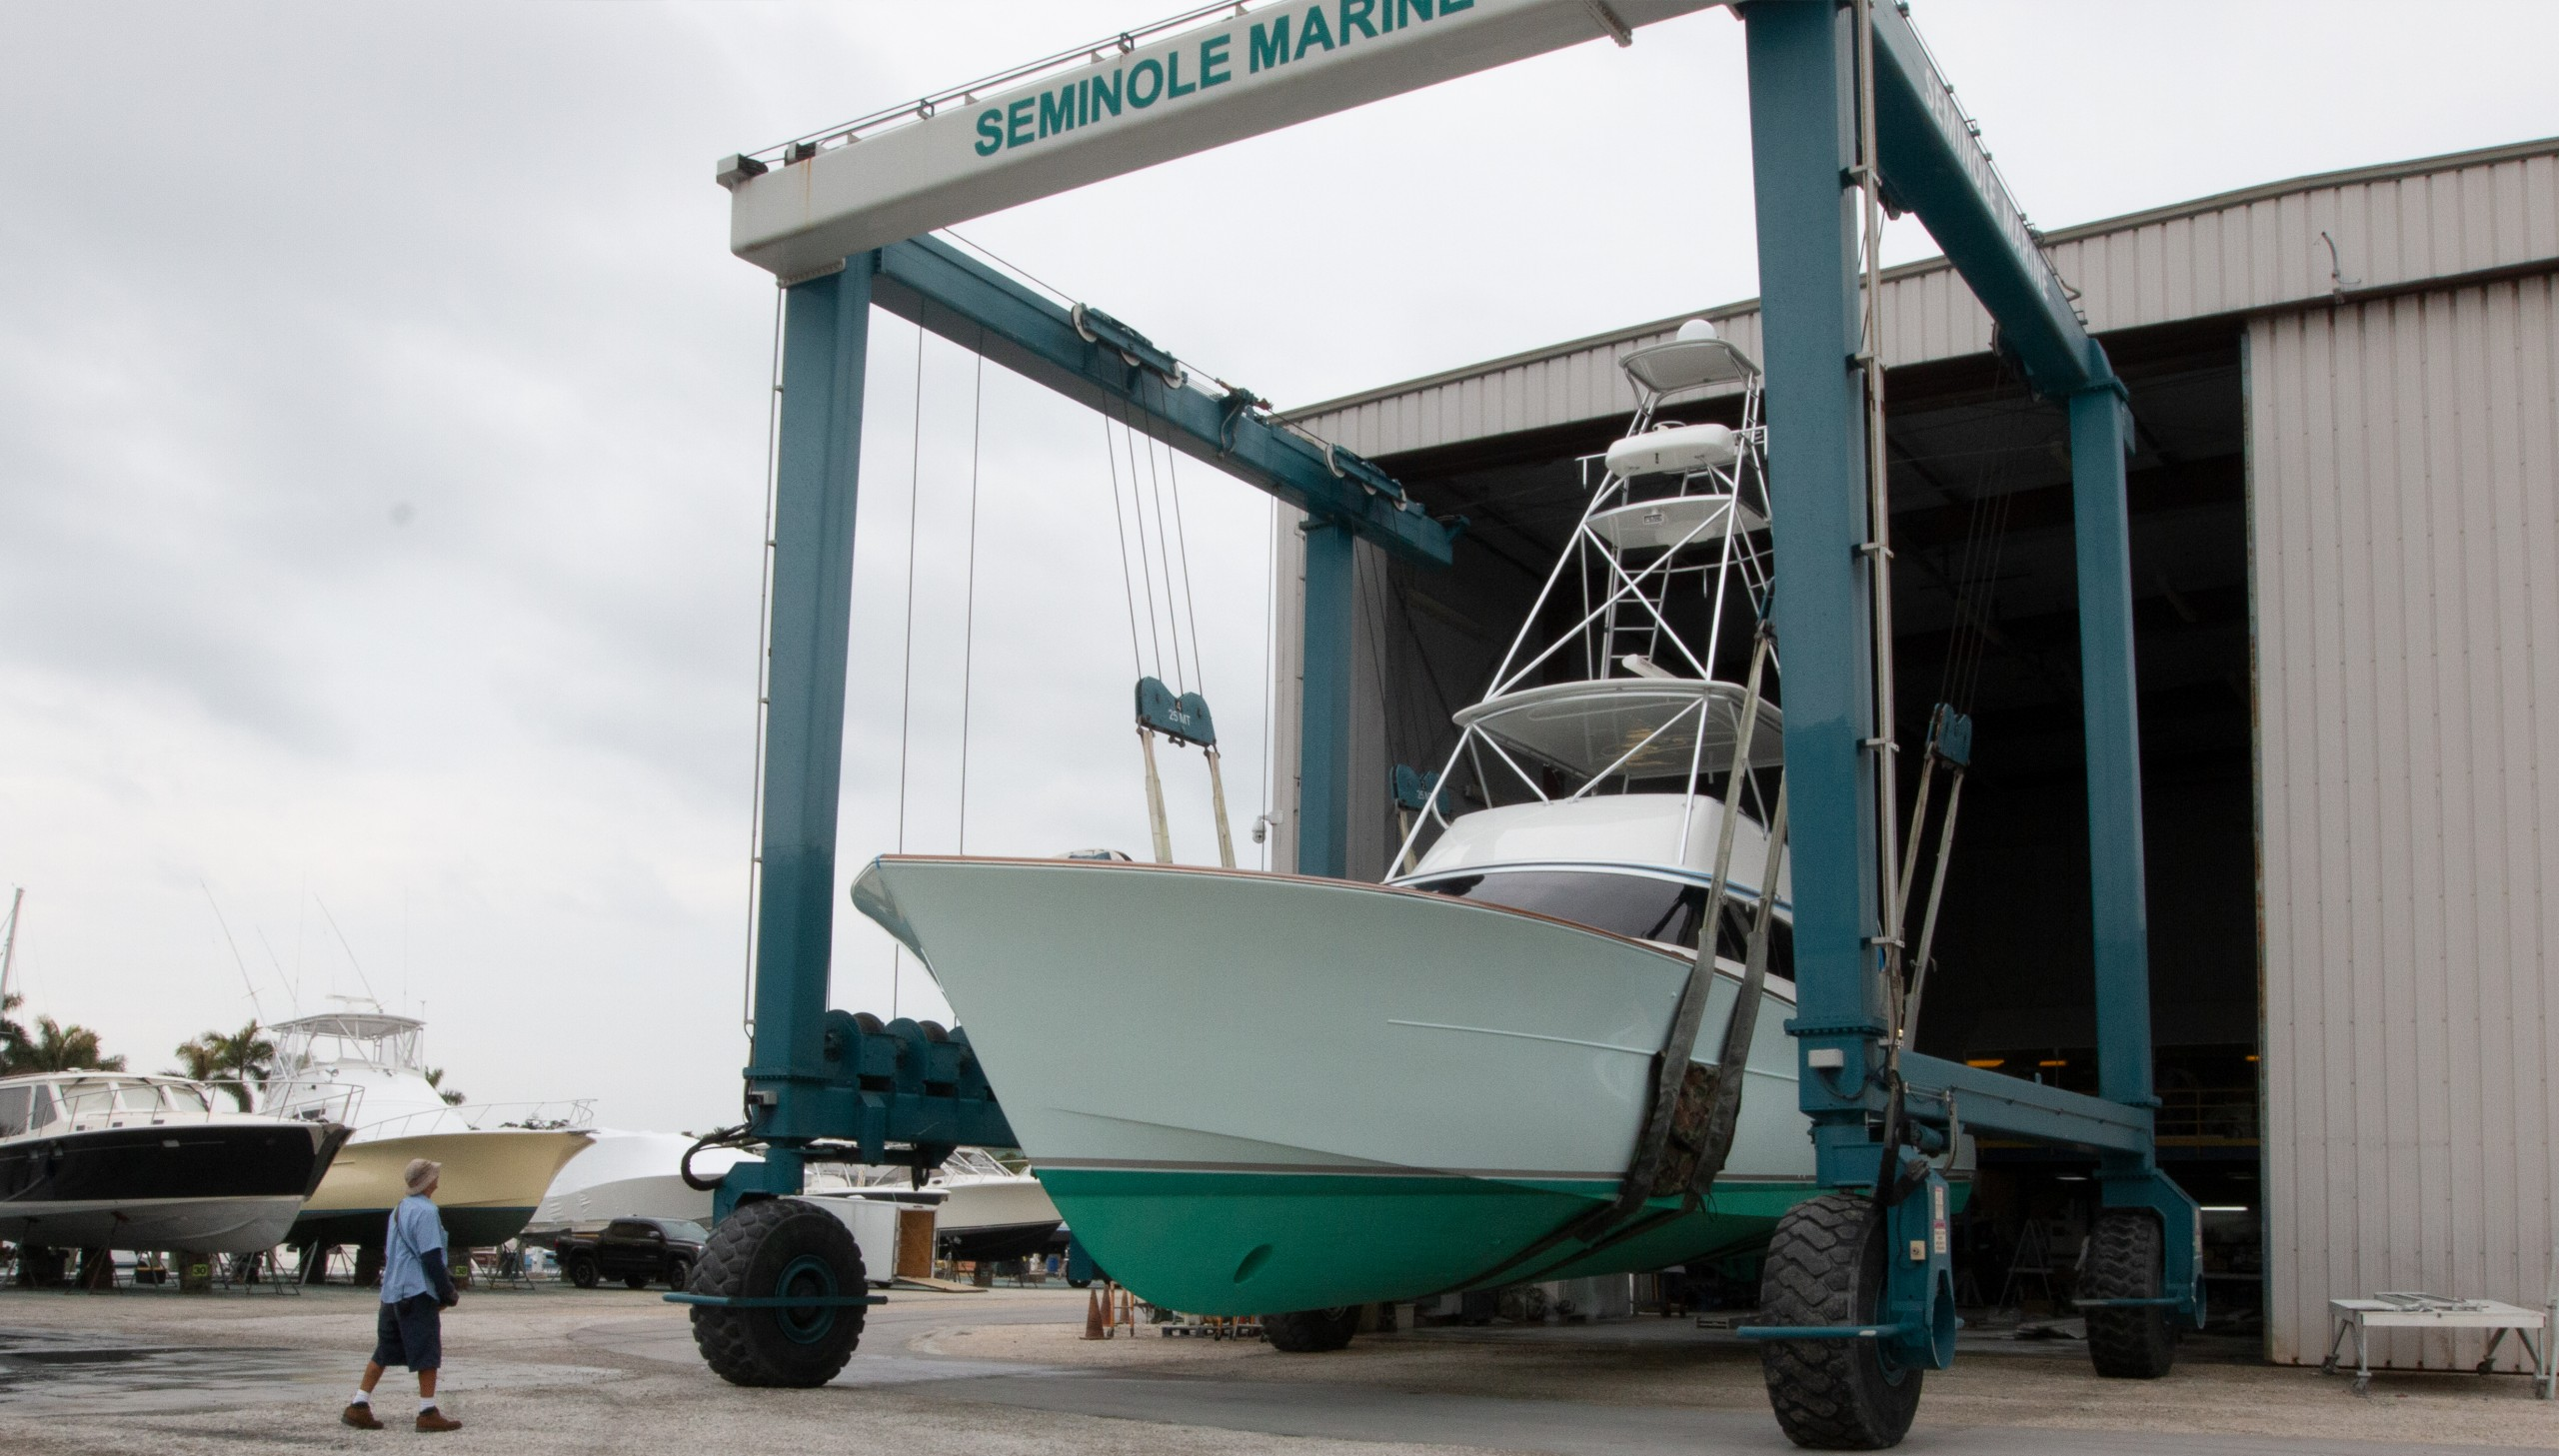 boat in sling at Seminole Boatyard